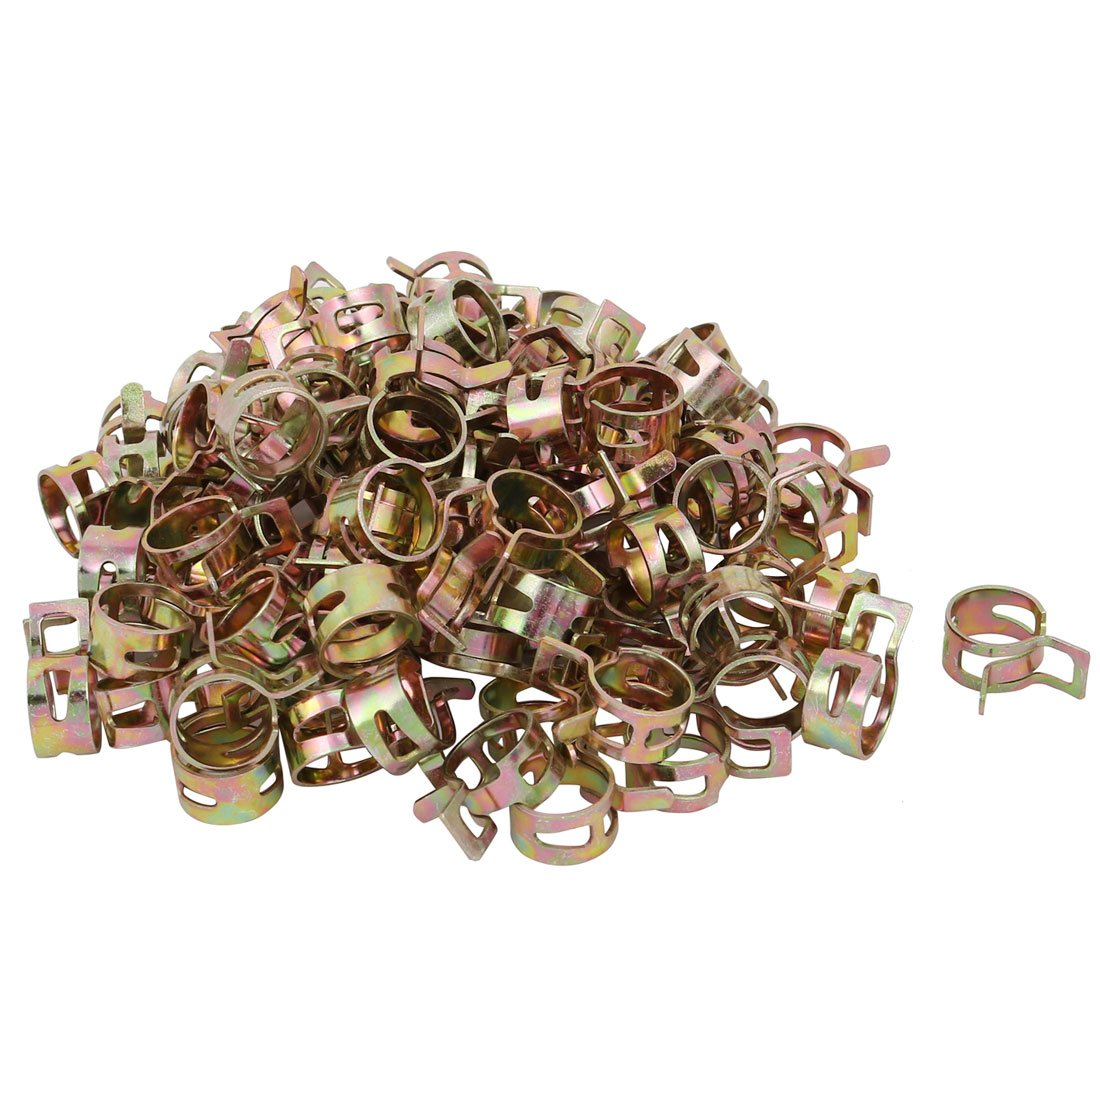 uxcell100 Pcs 12mm Spring Band Type Action Fuel Hose Pipe Air Clamp Bronze Tone a17091400ux0015